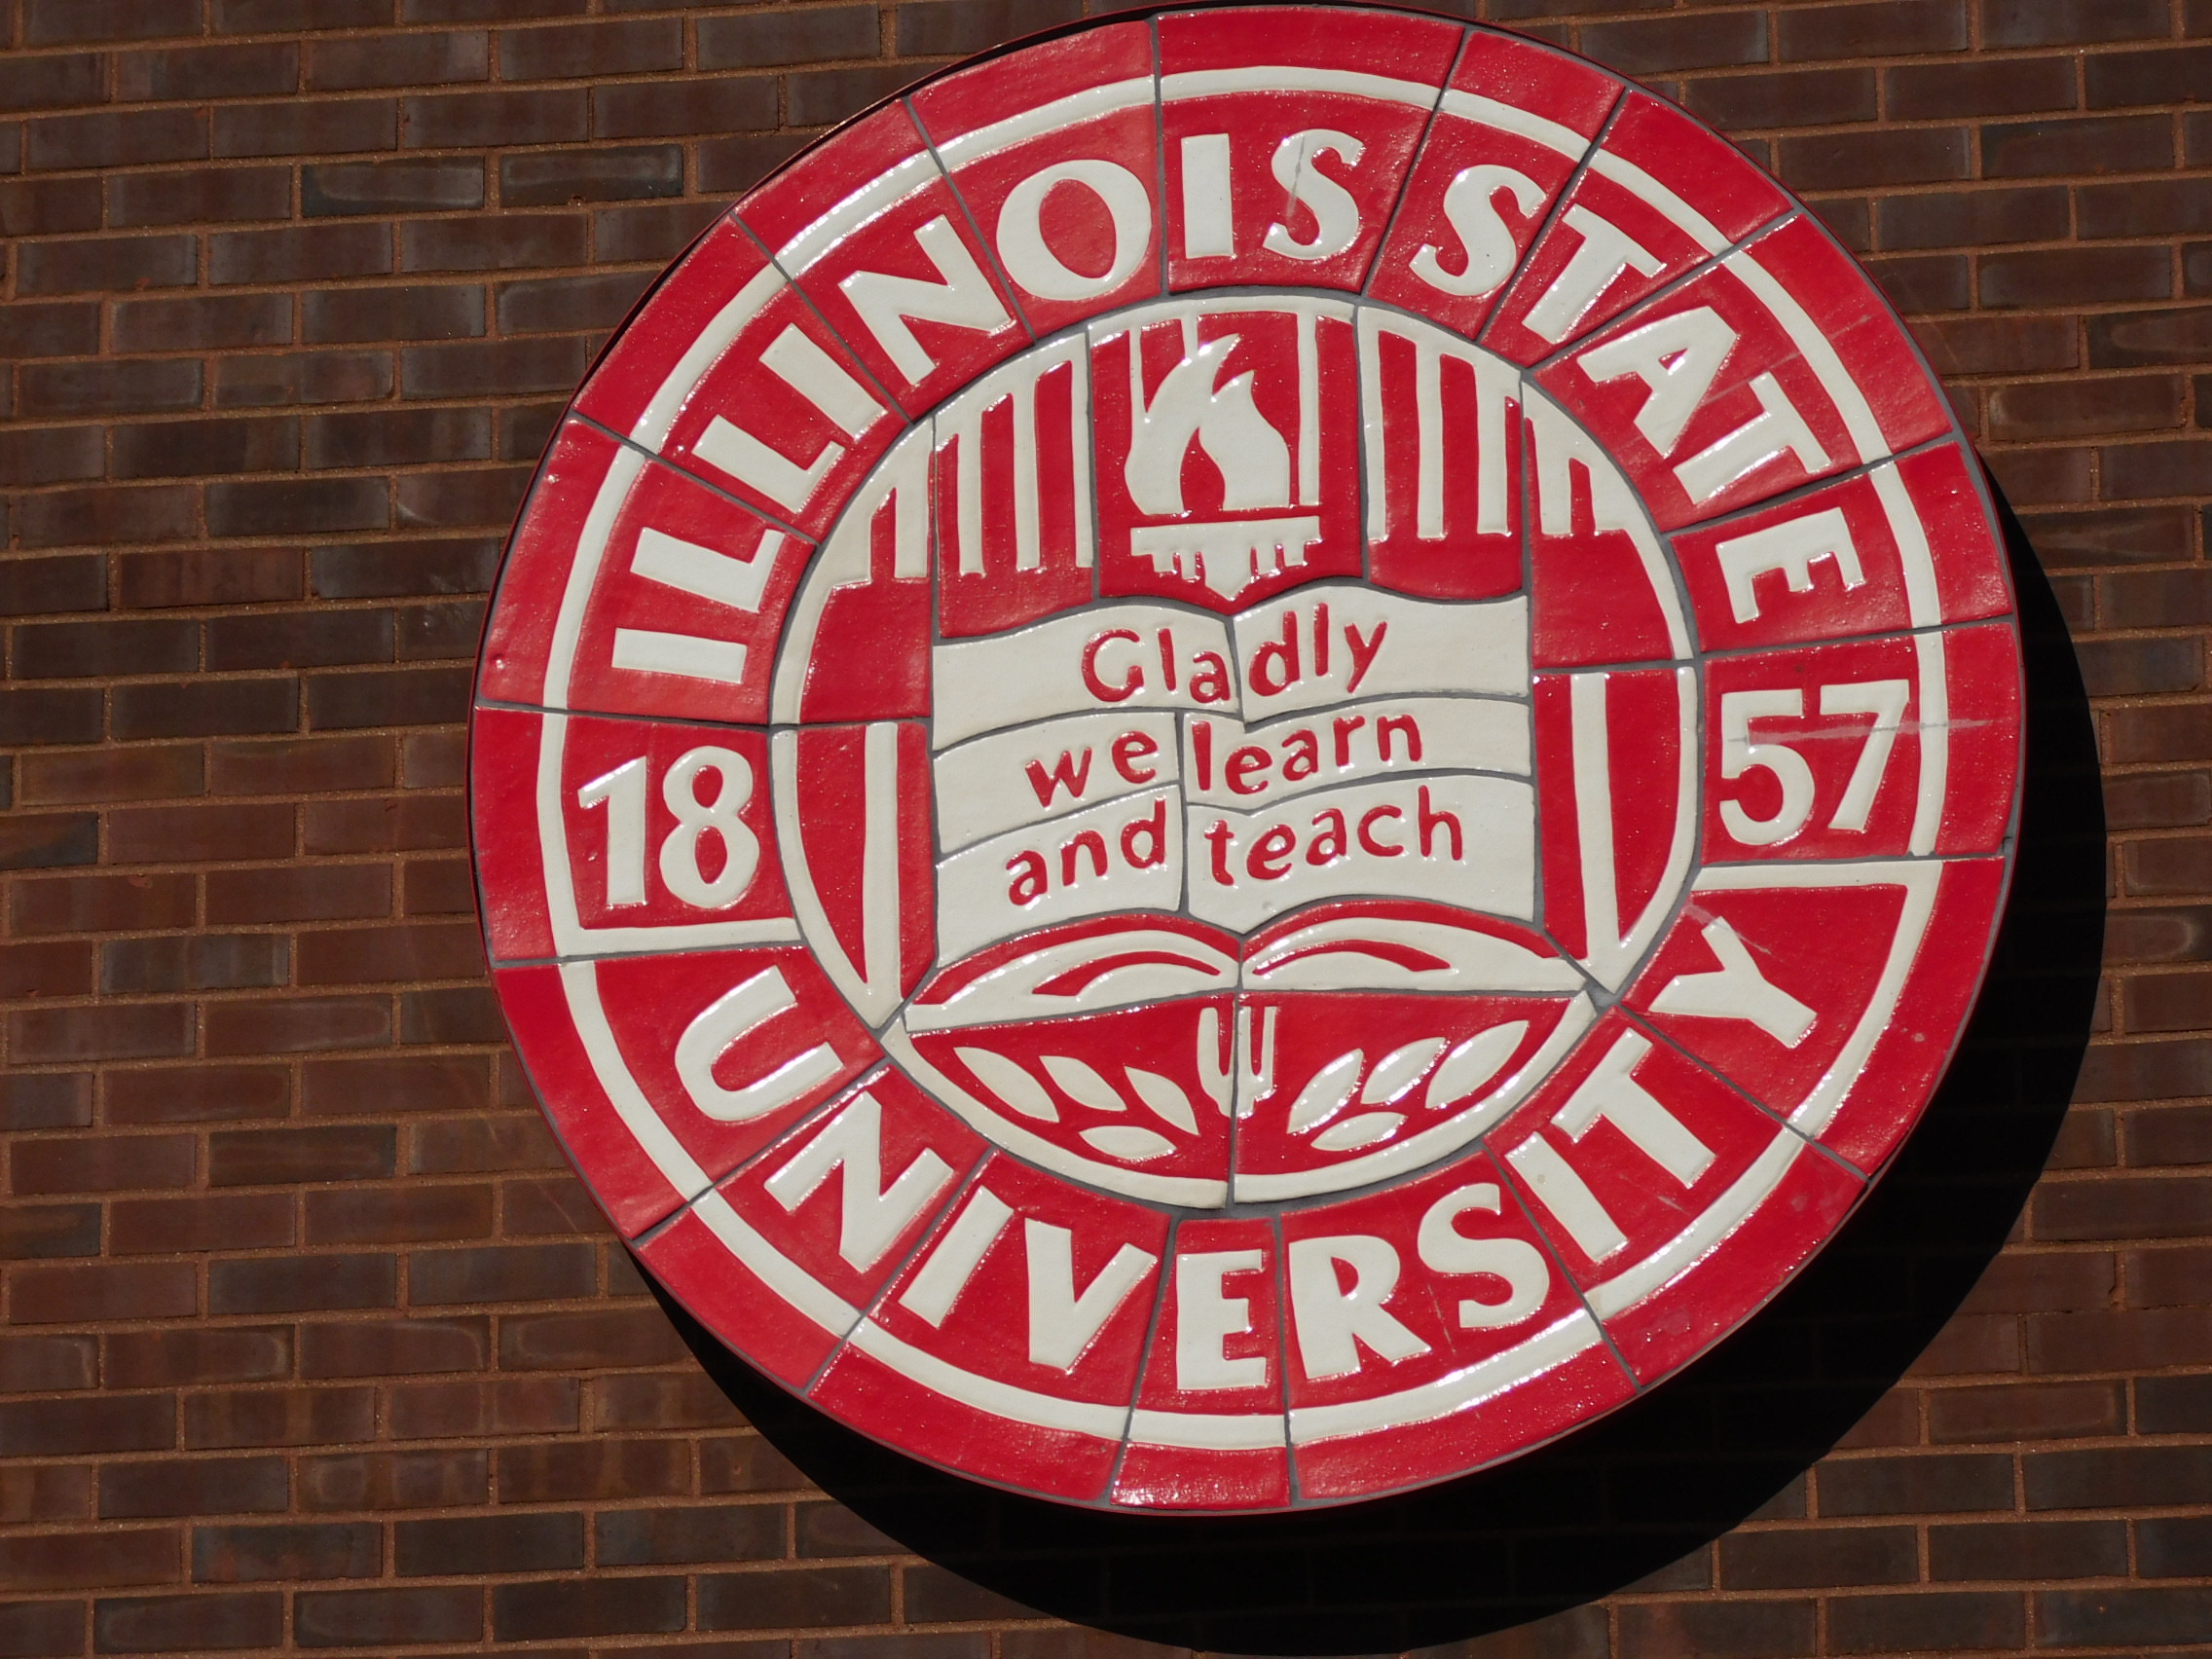 image of the Illinois State University seal